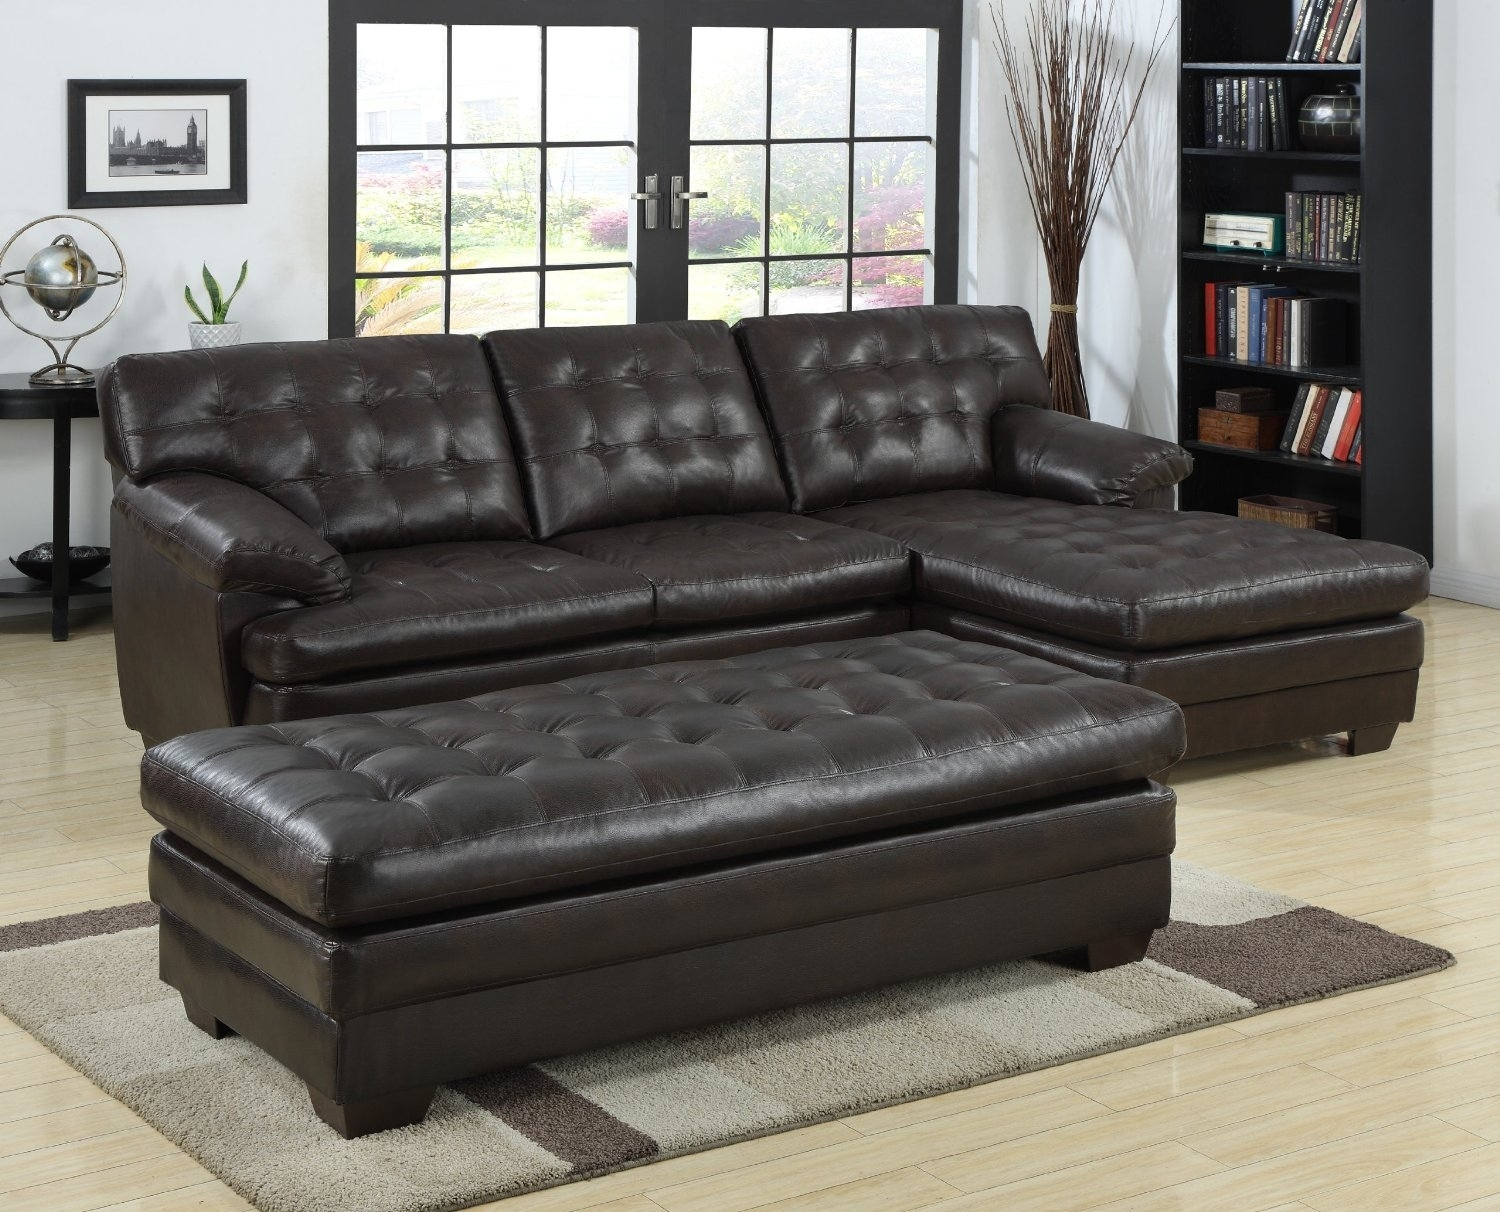 Black Tufted Leather Sectional Sofa With Chaise And Bench Seat Plus Inside Sectional Sofas With Chaise Lounge And Ottoman (Image 3 of 10)